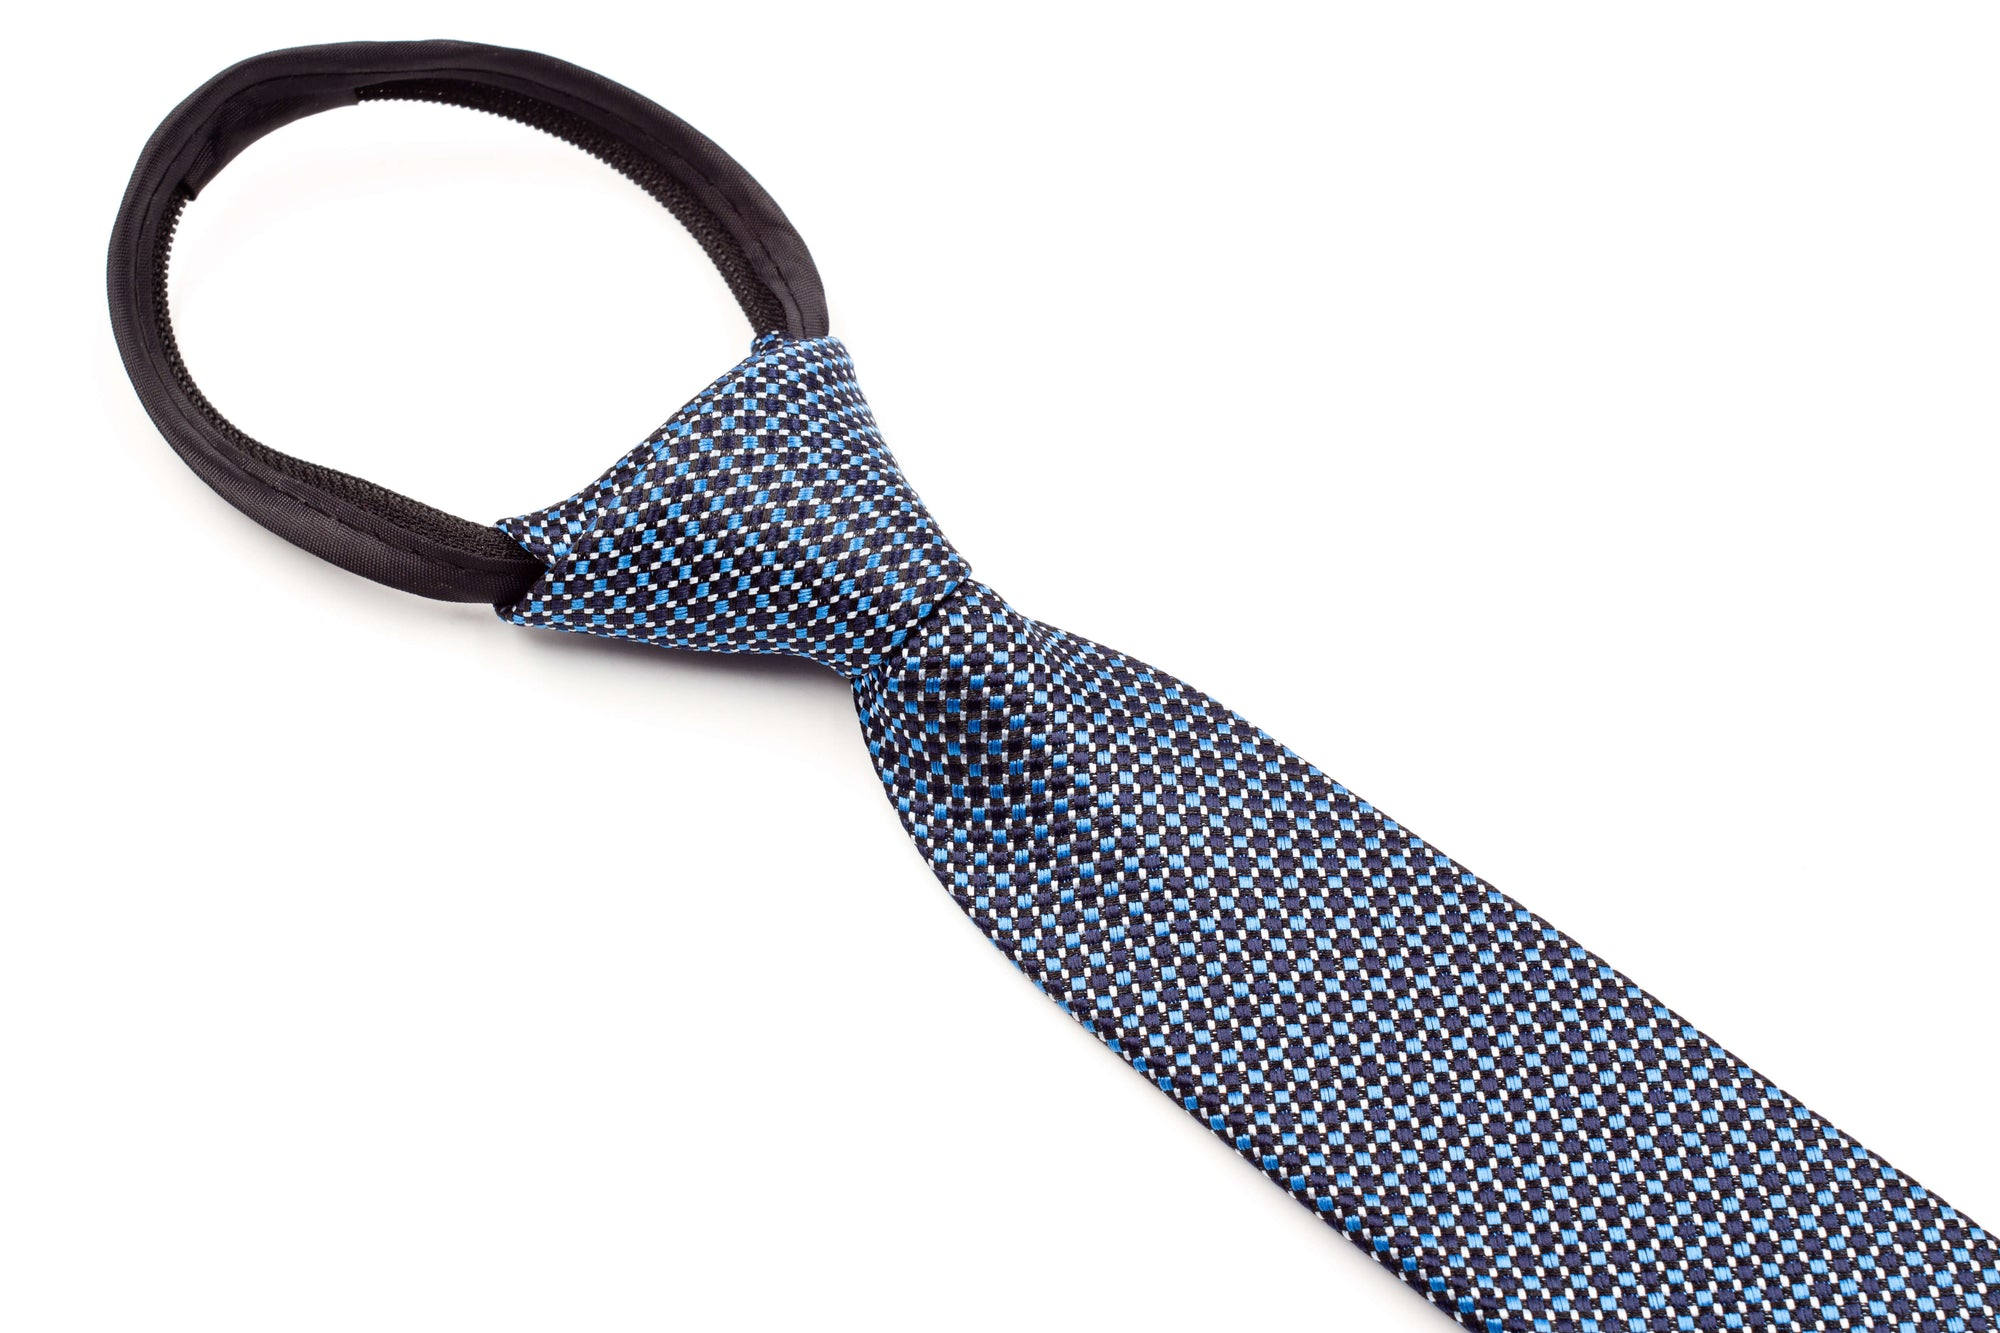 Boys Ties - Black and Blue Checks